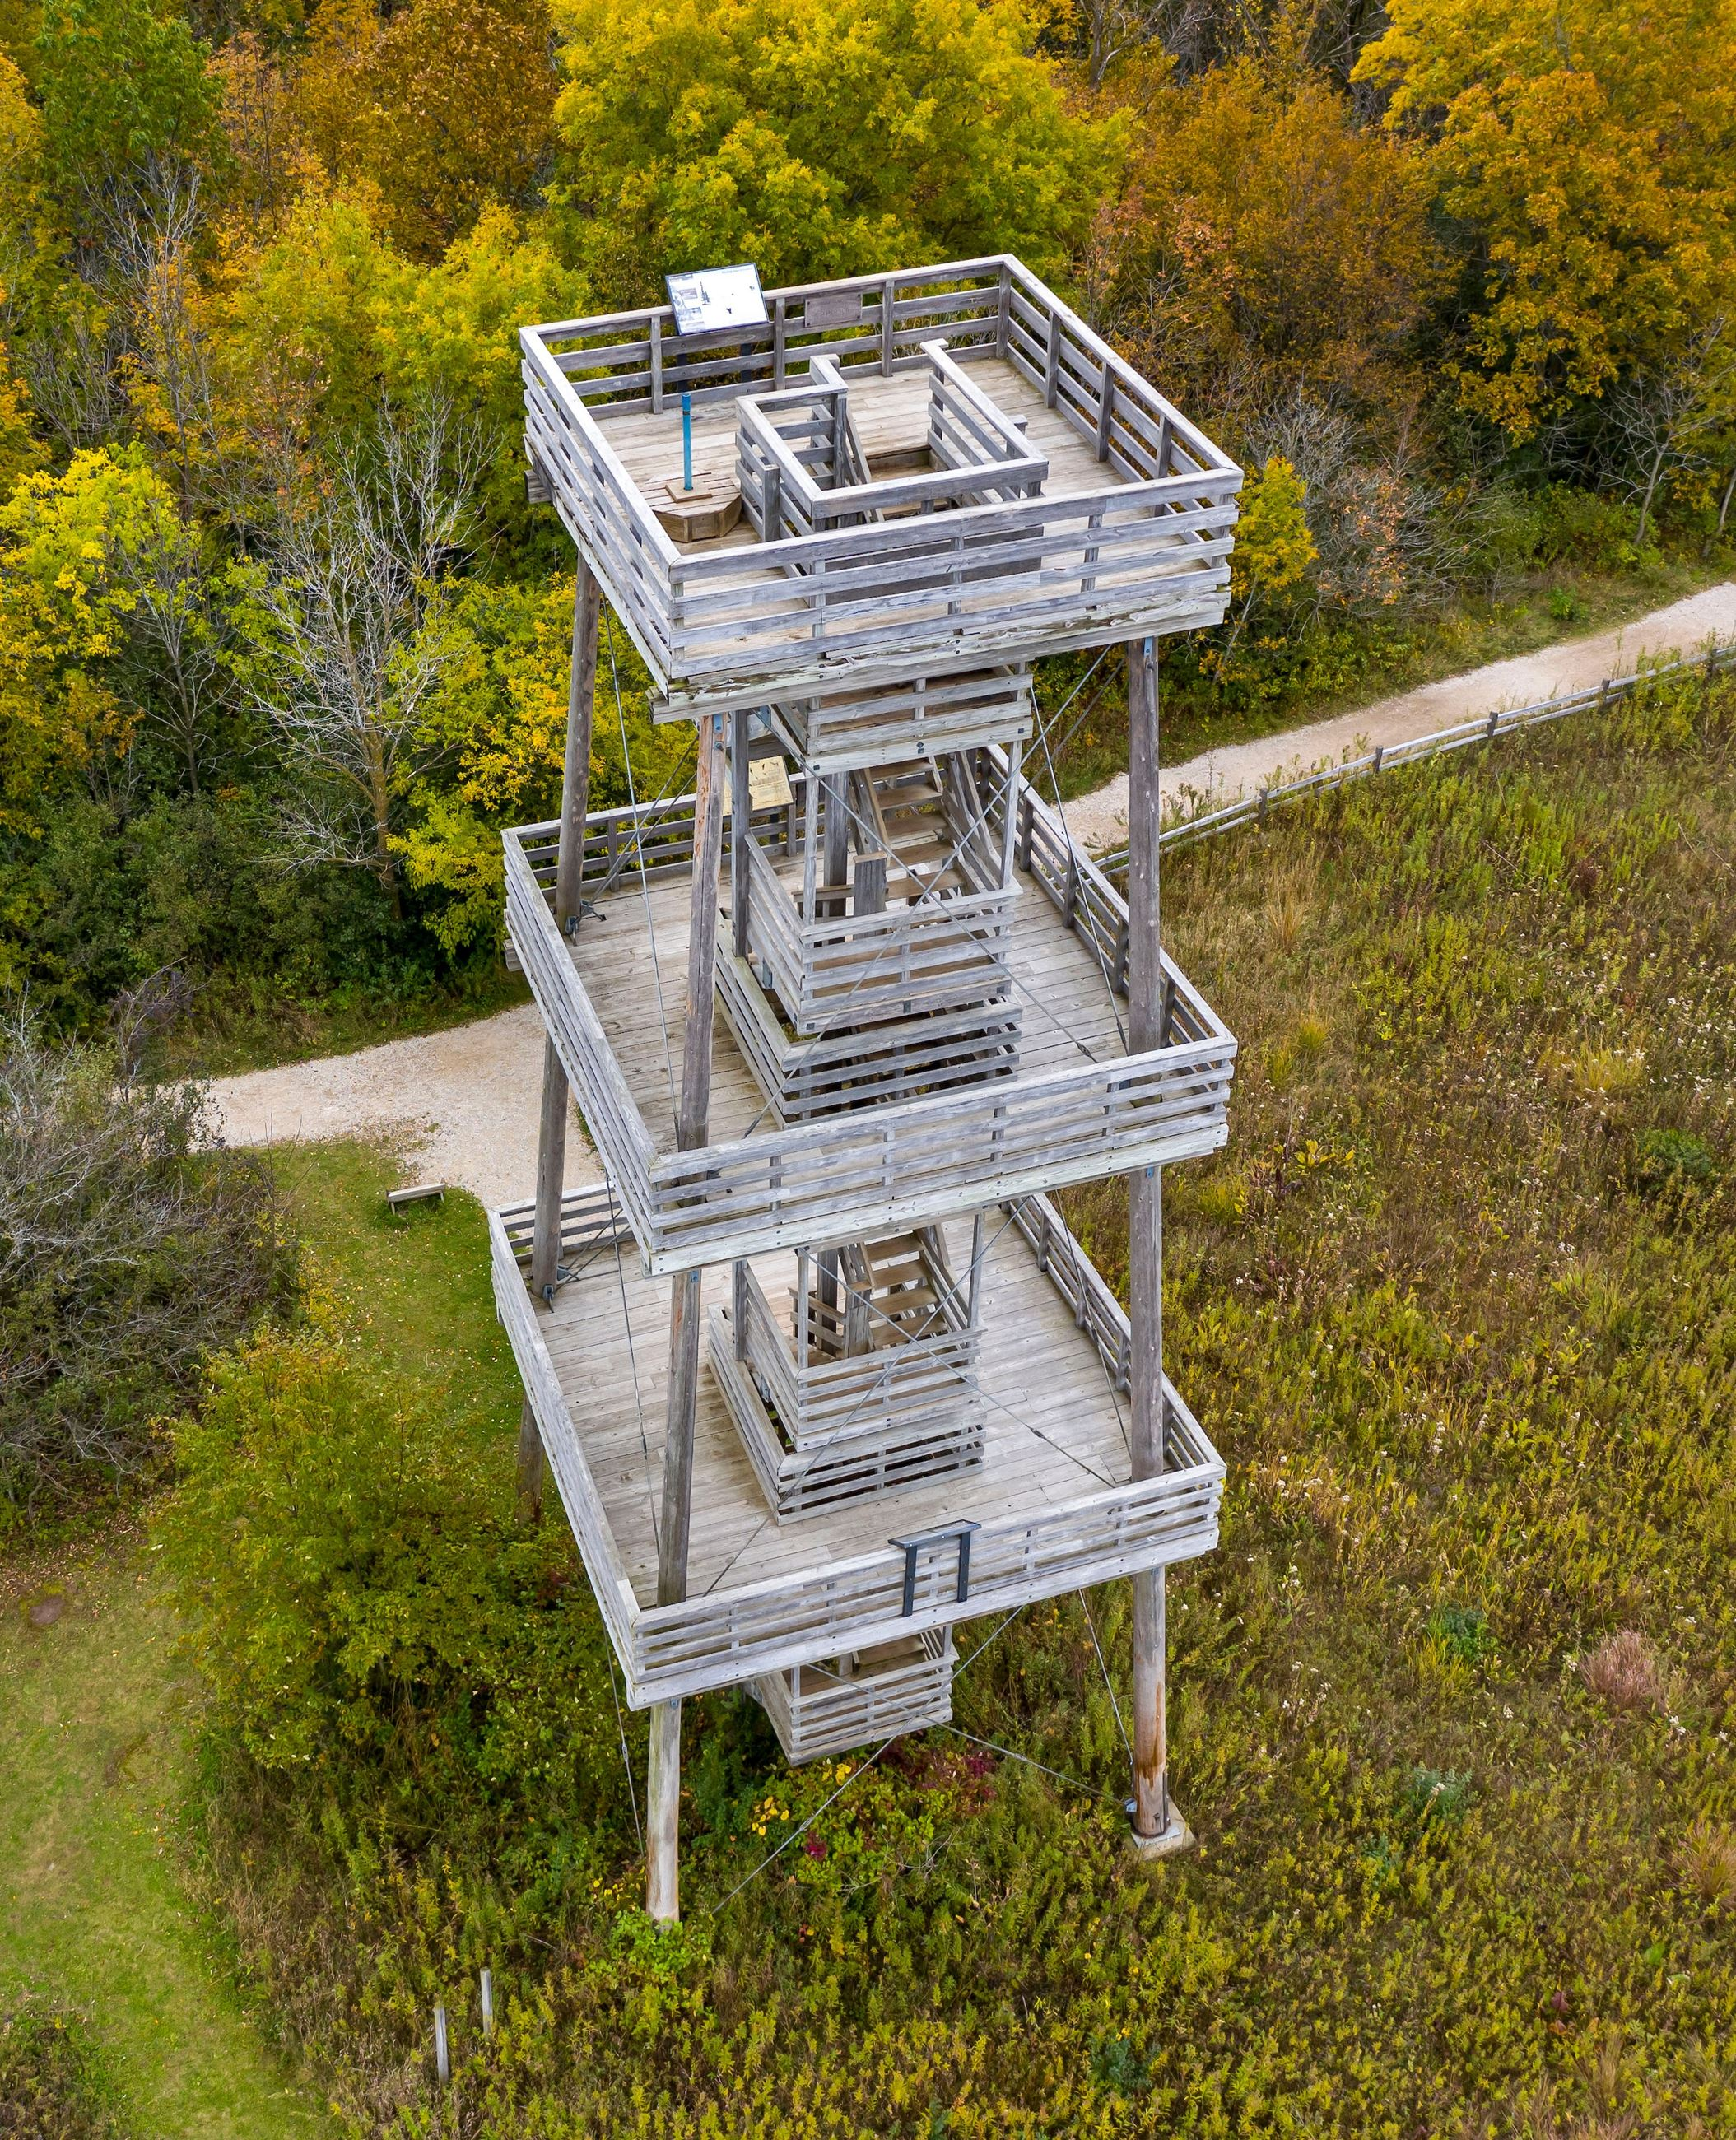 A 60 foot wooden observation tower shown from above.